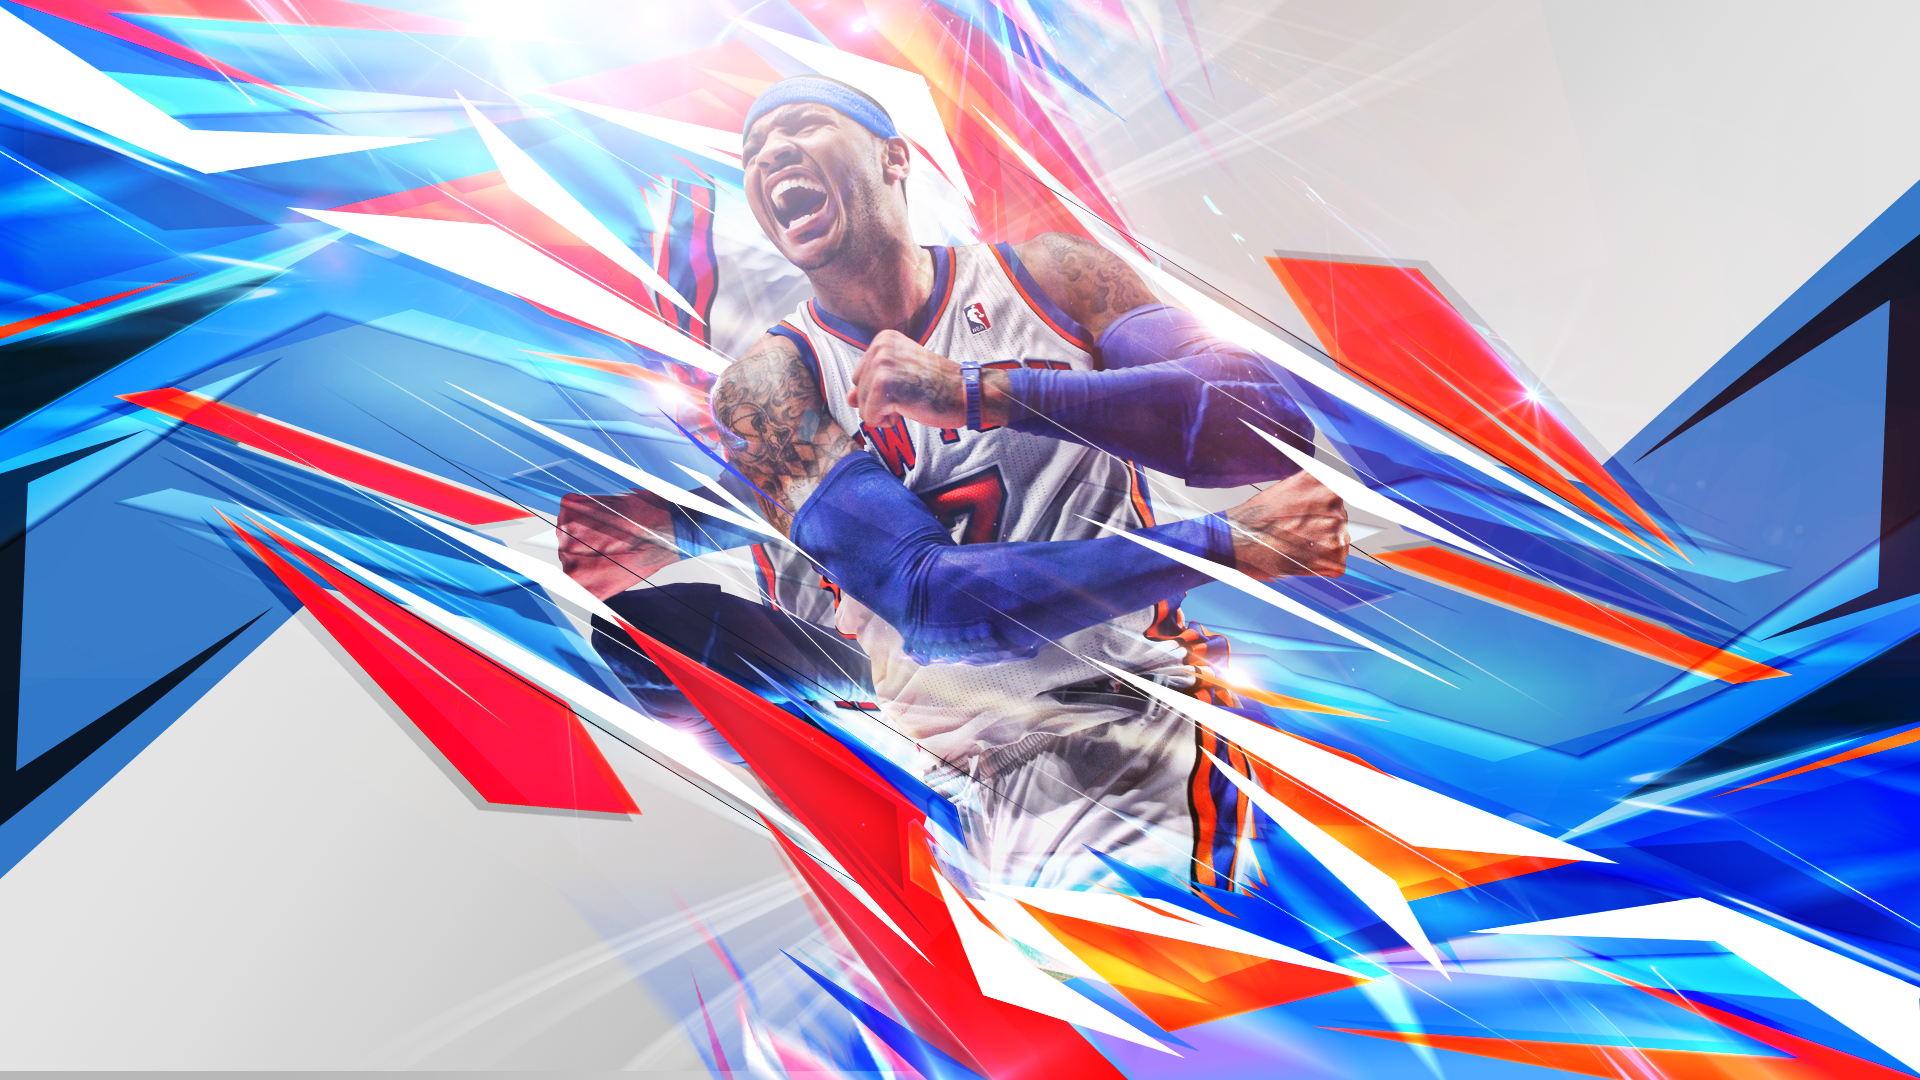 1920x1440 px hd wallpapers new york knicks carmelo anthony Quotes 1920x1080